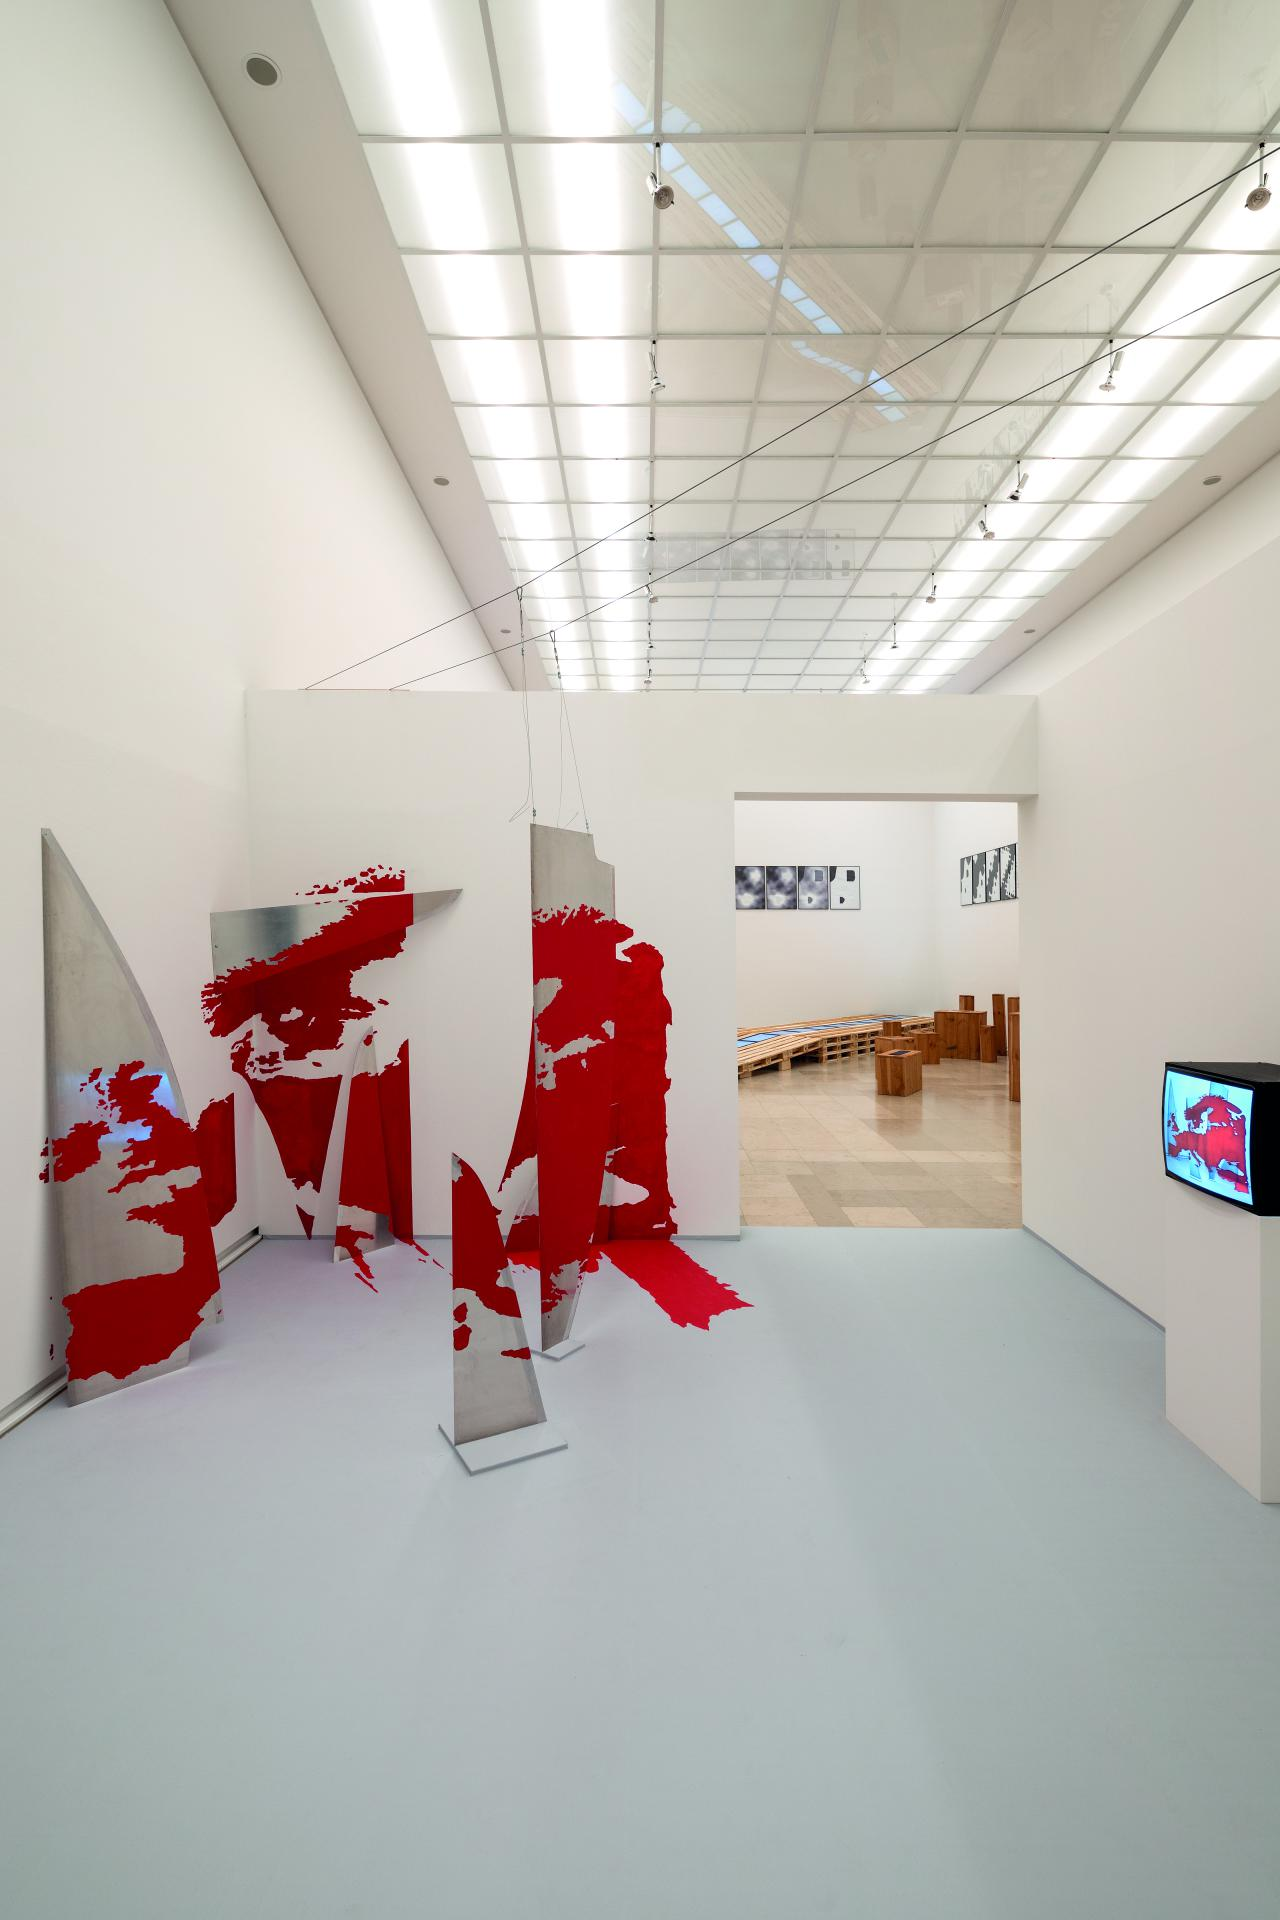 Installation view. A map of the world is grown into the wall in three dimensions.